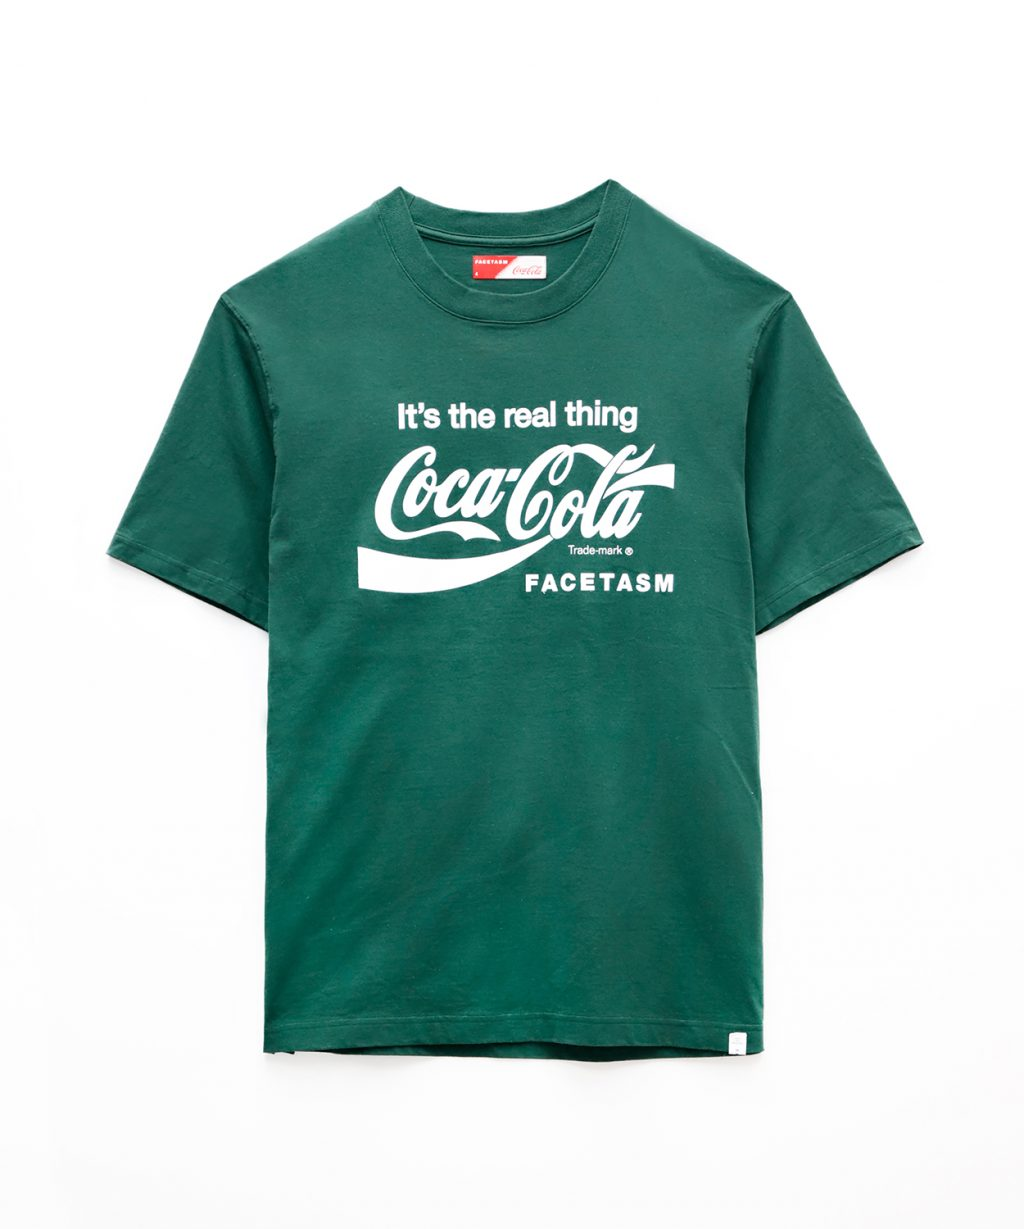 COCA-COLA-BASIC-TEE-green1-1024x1229.jpg